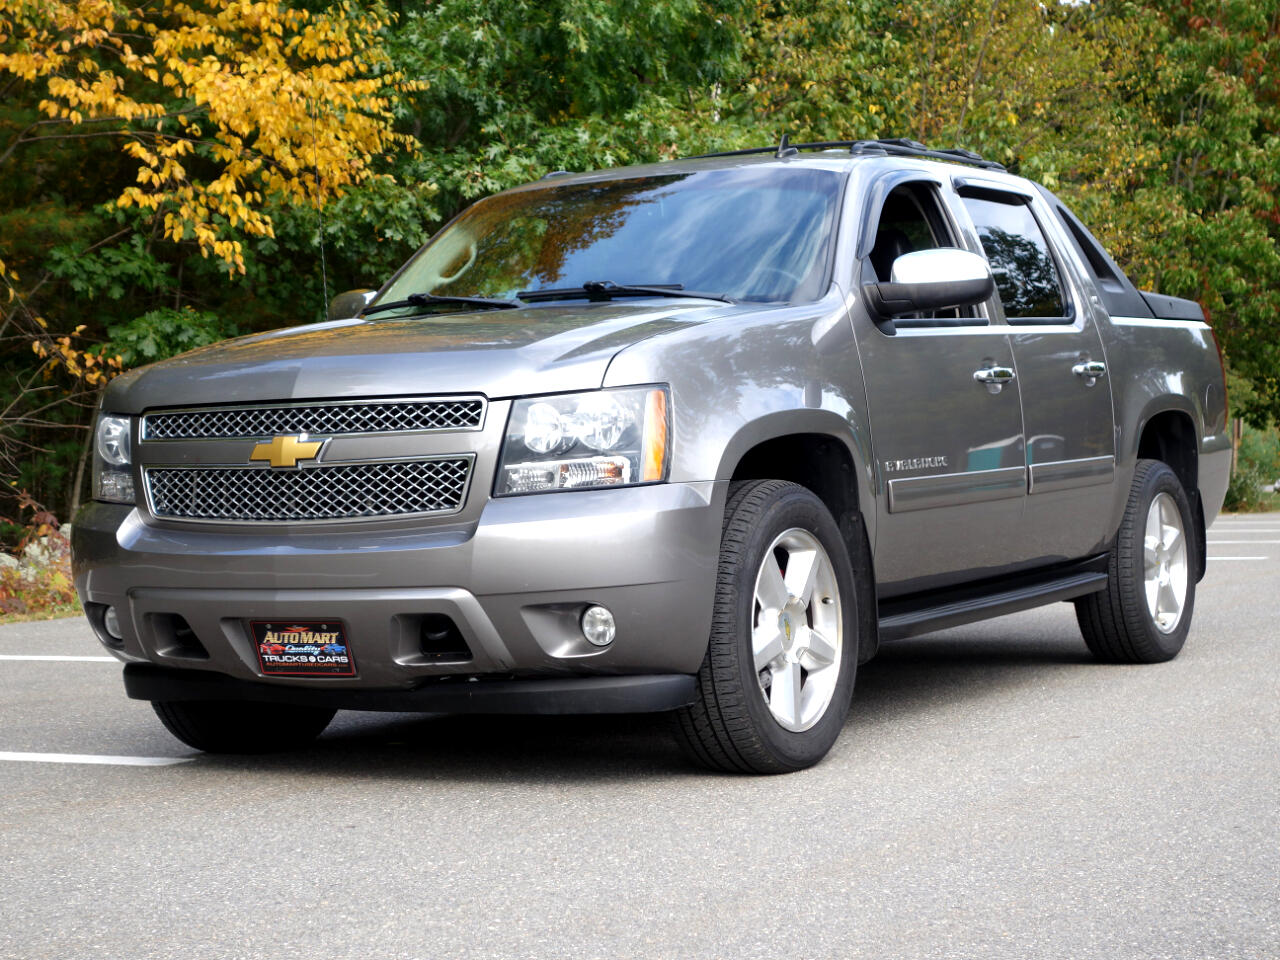 Chevrolet Avalanche 4WD Crew Cab LT 2012